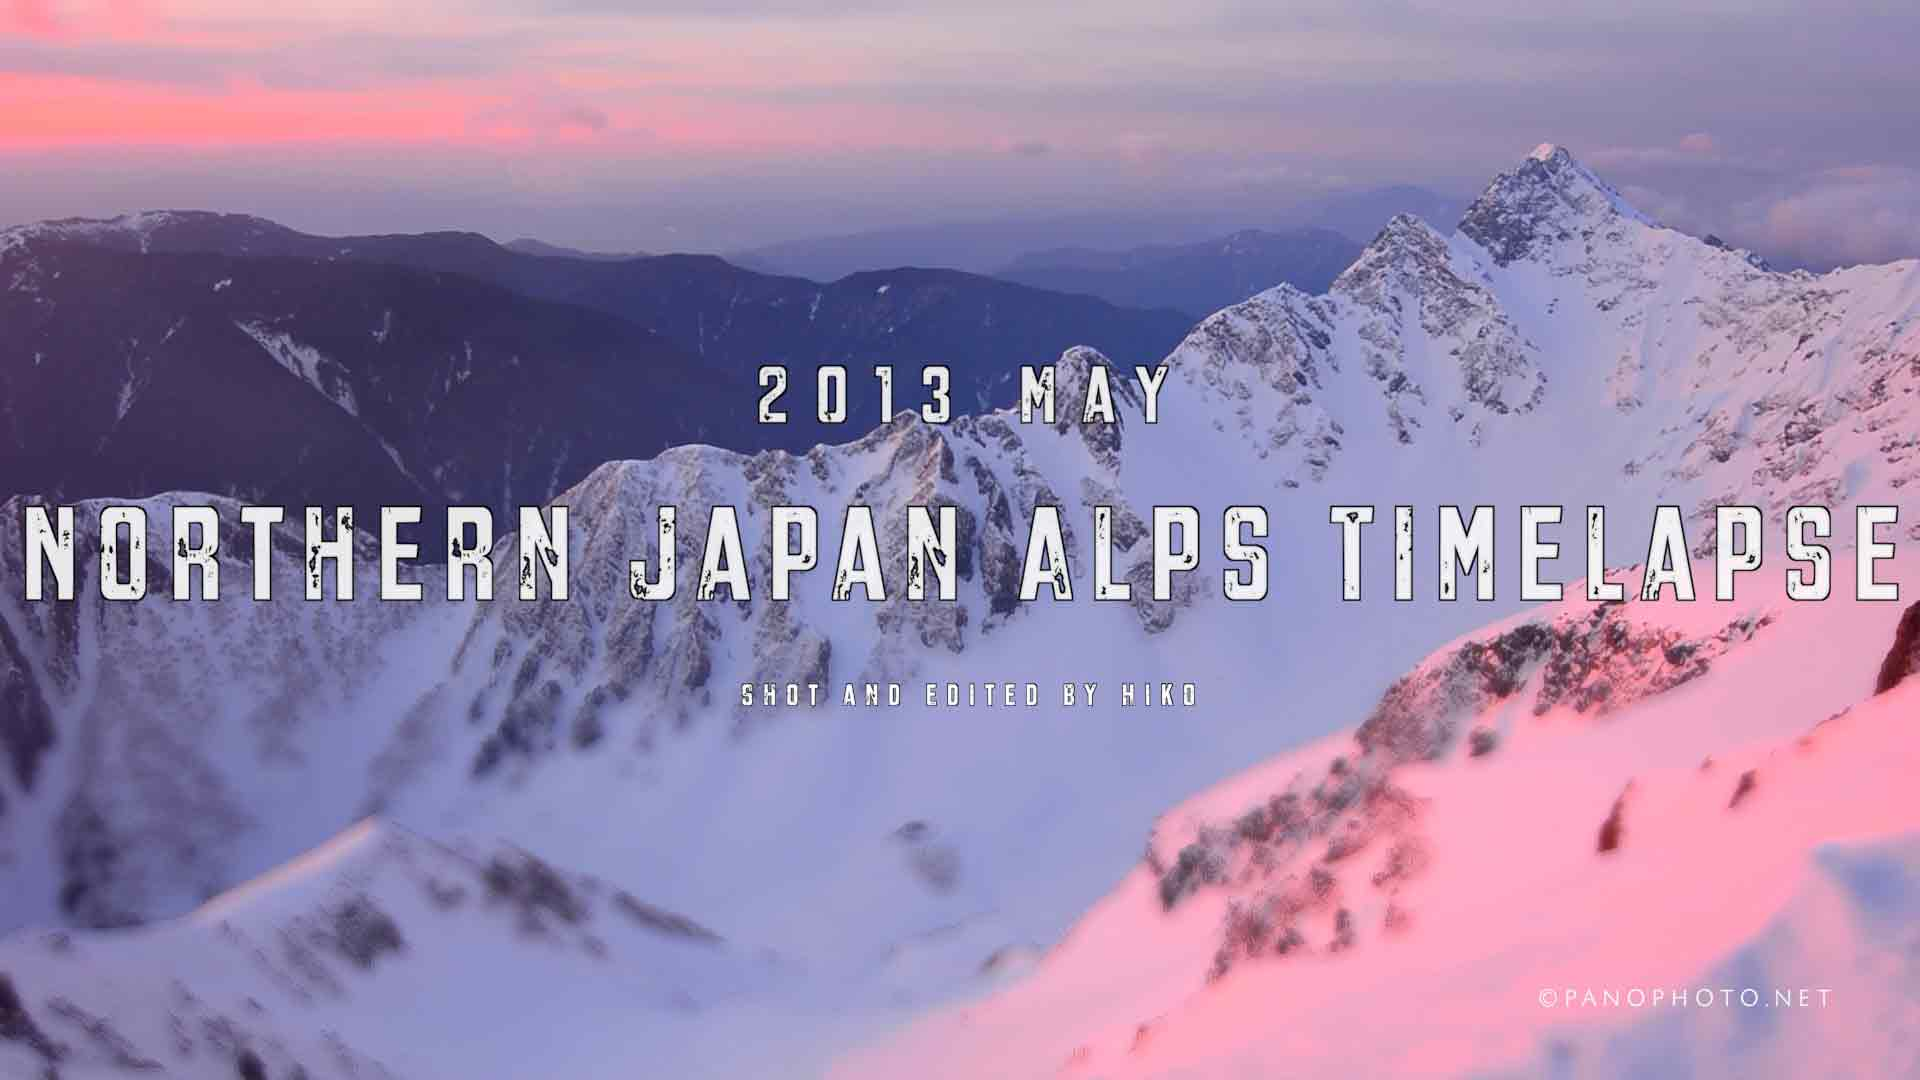 Northern-Japan-Alps-Timelapse-Featured-Image